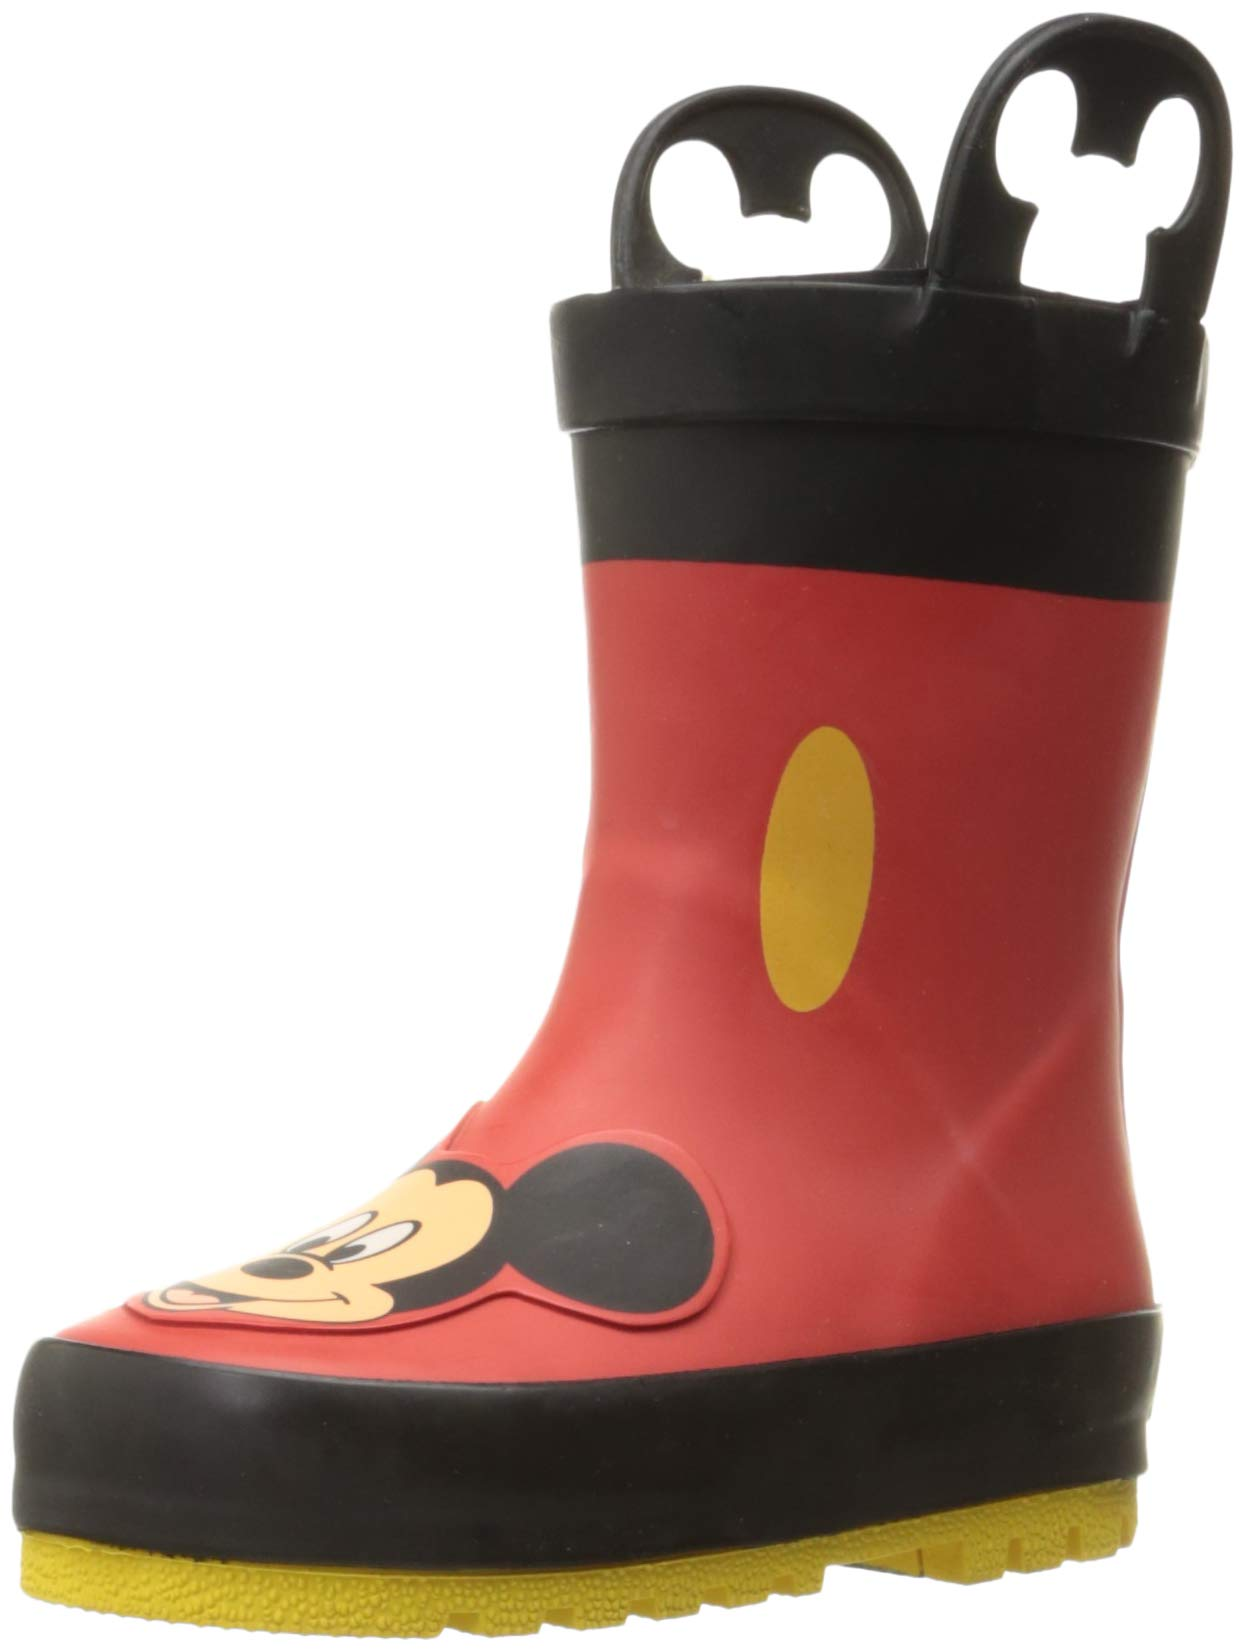 Western Chief Kids Waterproof Disney Character Rain Boots with Easy on Handles, Mickey Mouse, 13 M US Little Kid